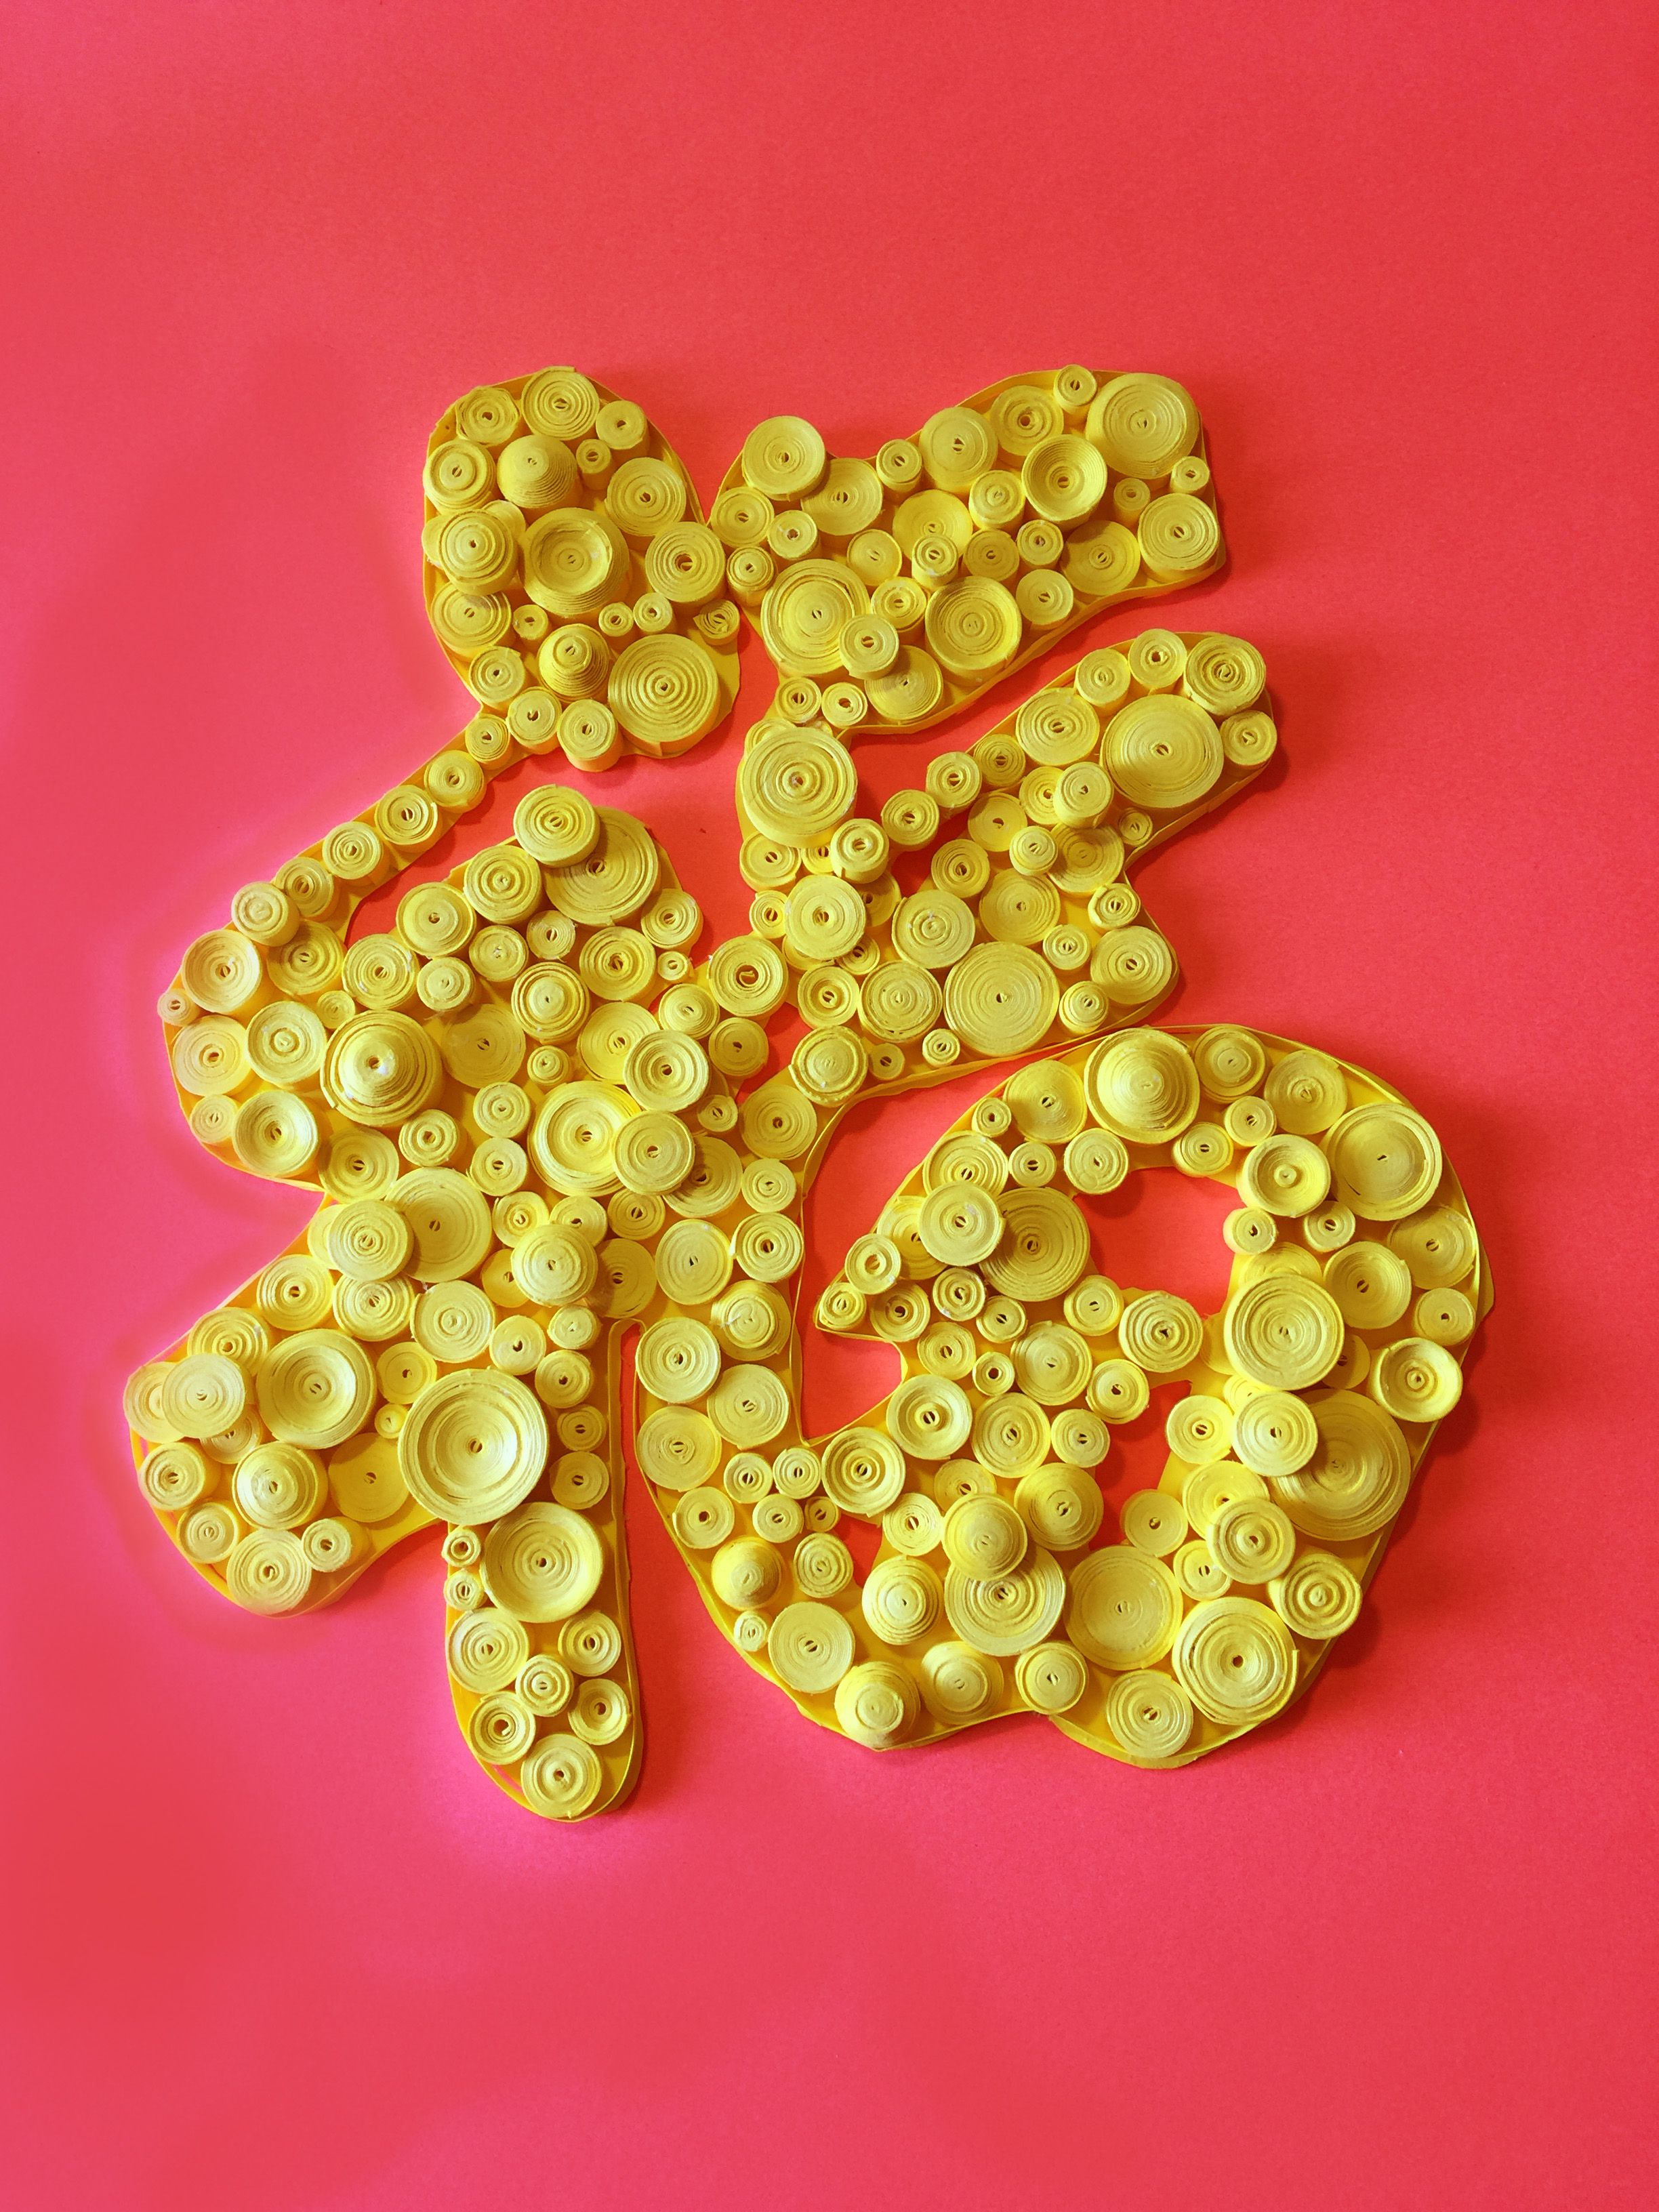 Fu Chinese Character For Luck Chinese Characters Quilling And Craft